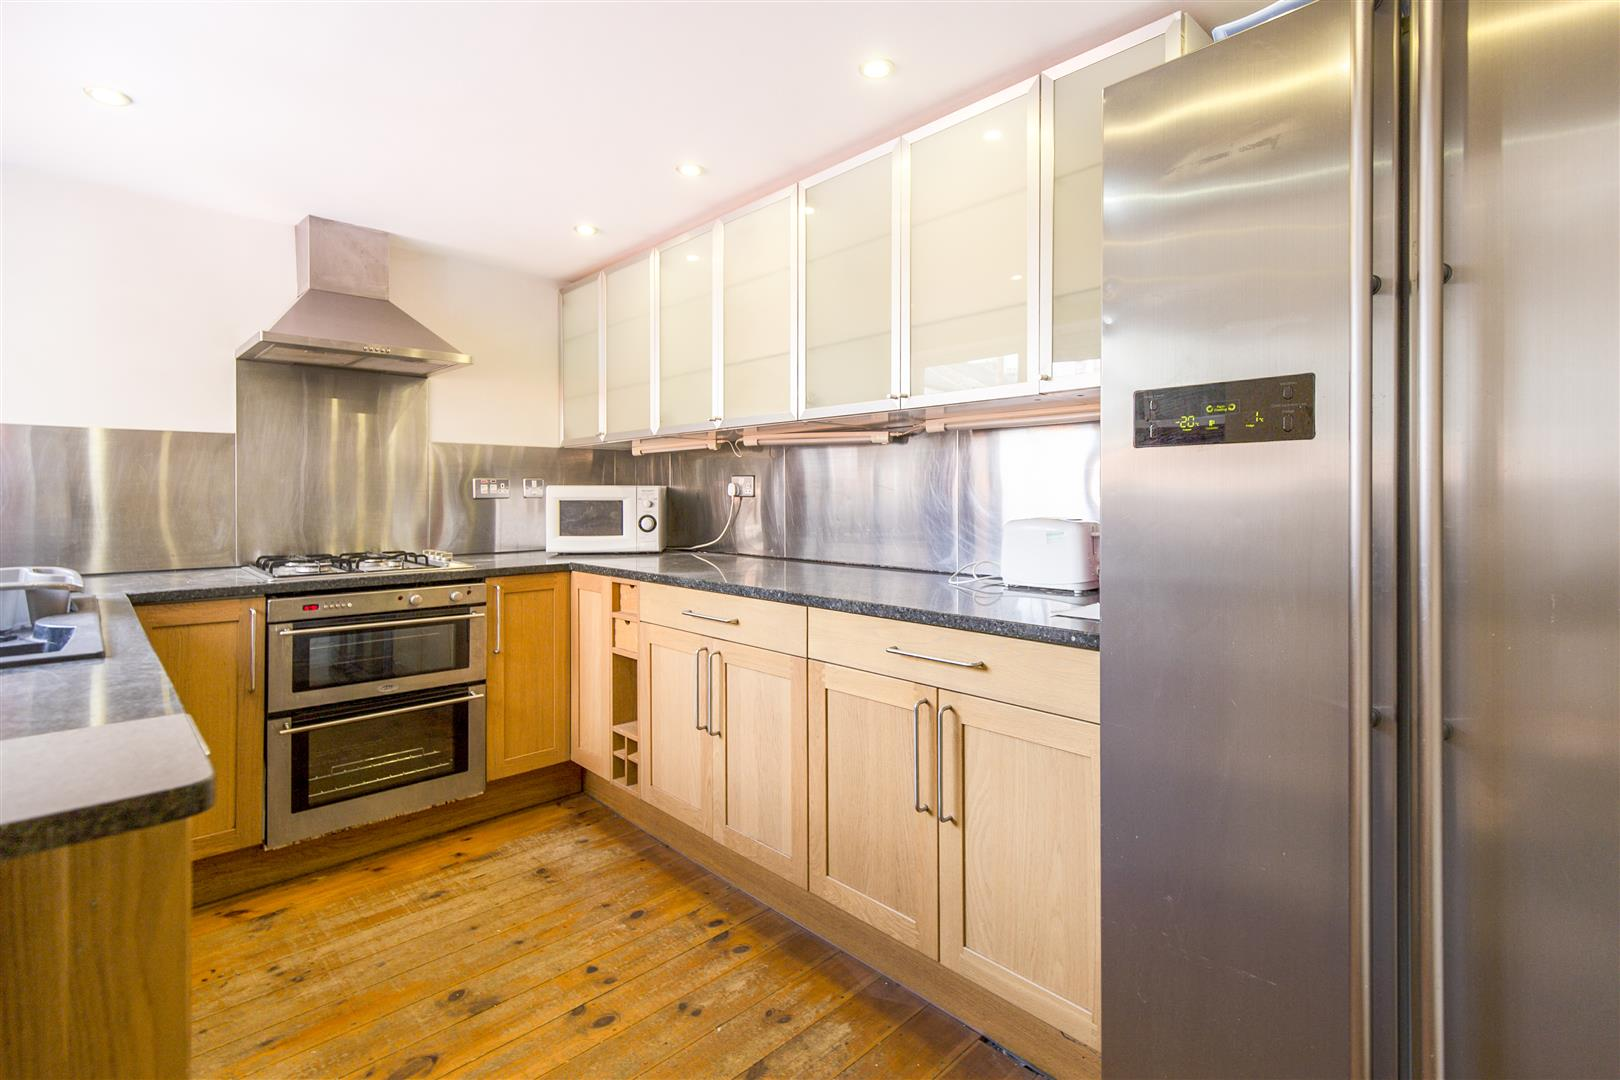 6 bed terraced house to rent in Newcastle Upon Tyne, NE2 1AY, NE2